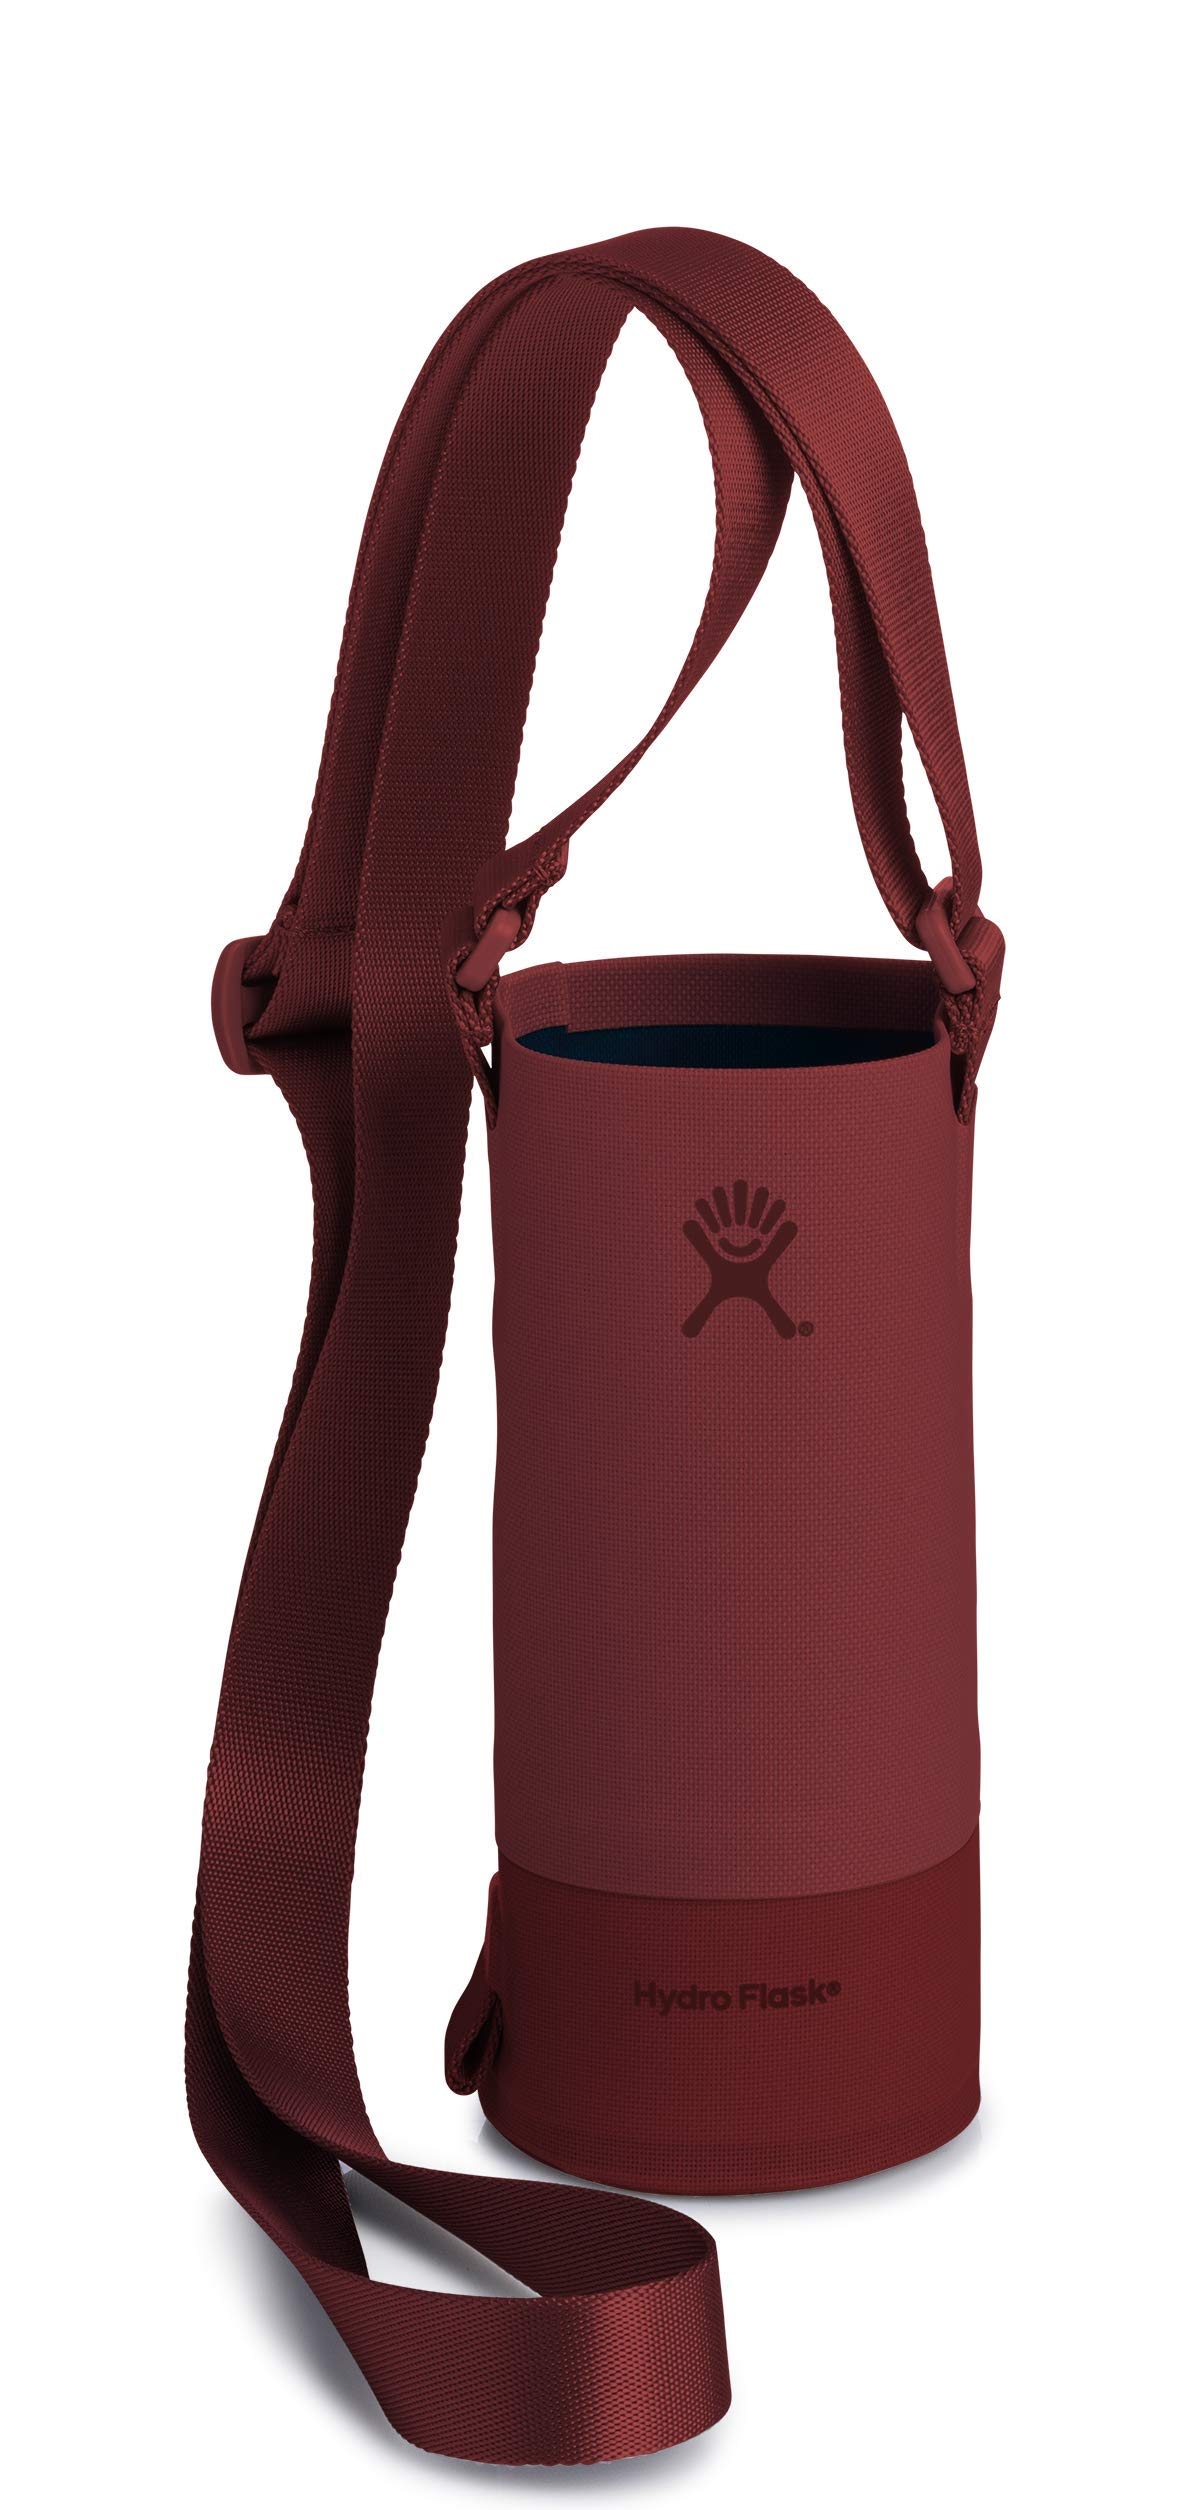 Hydro Flask Small Soft Sided Nylon Tag Along Water Bottle Sling with Pockets, Brick (Fits 12 oz, 18 oz, 21 oz, and 24 oz Bottles)